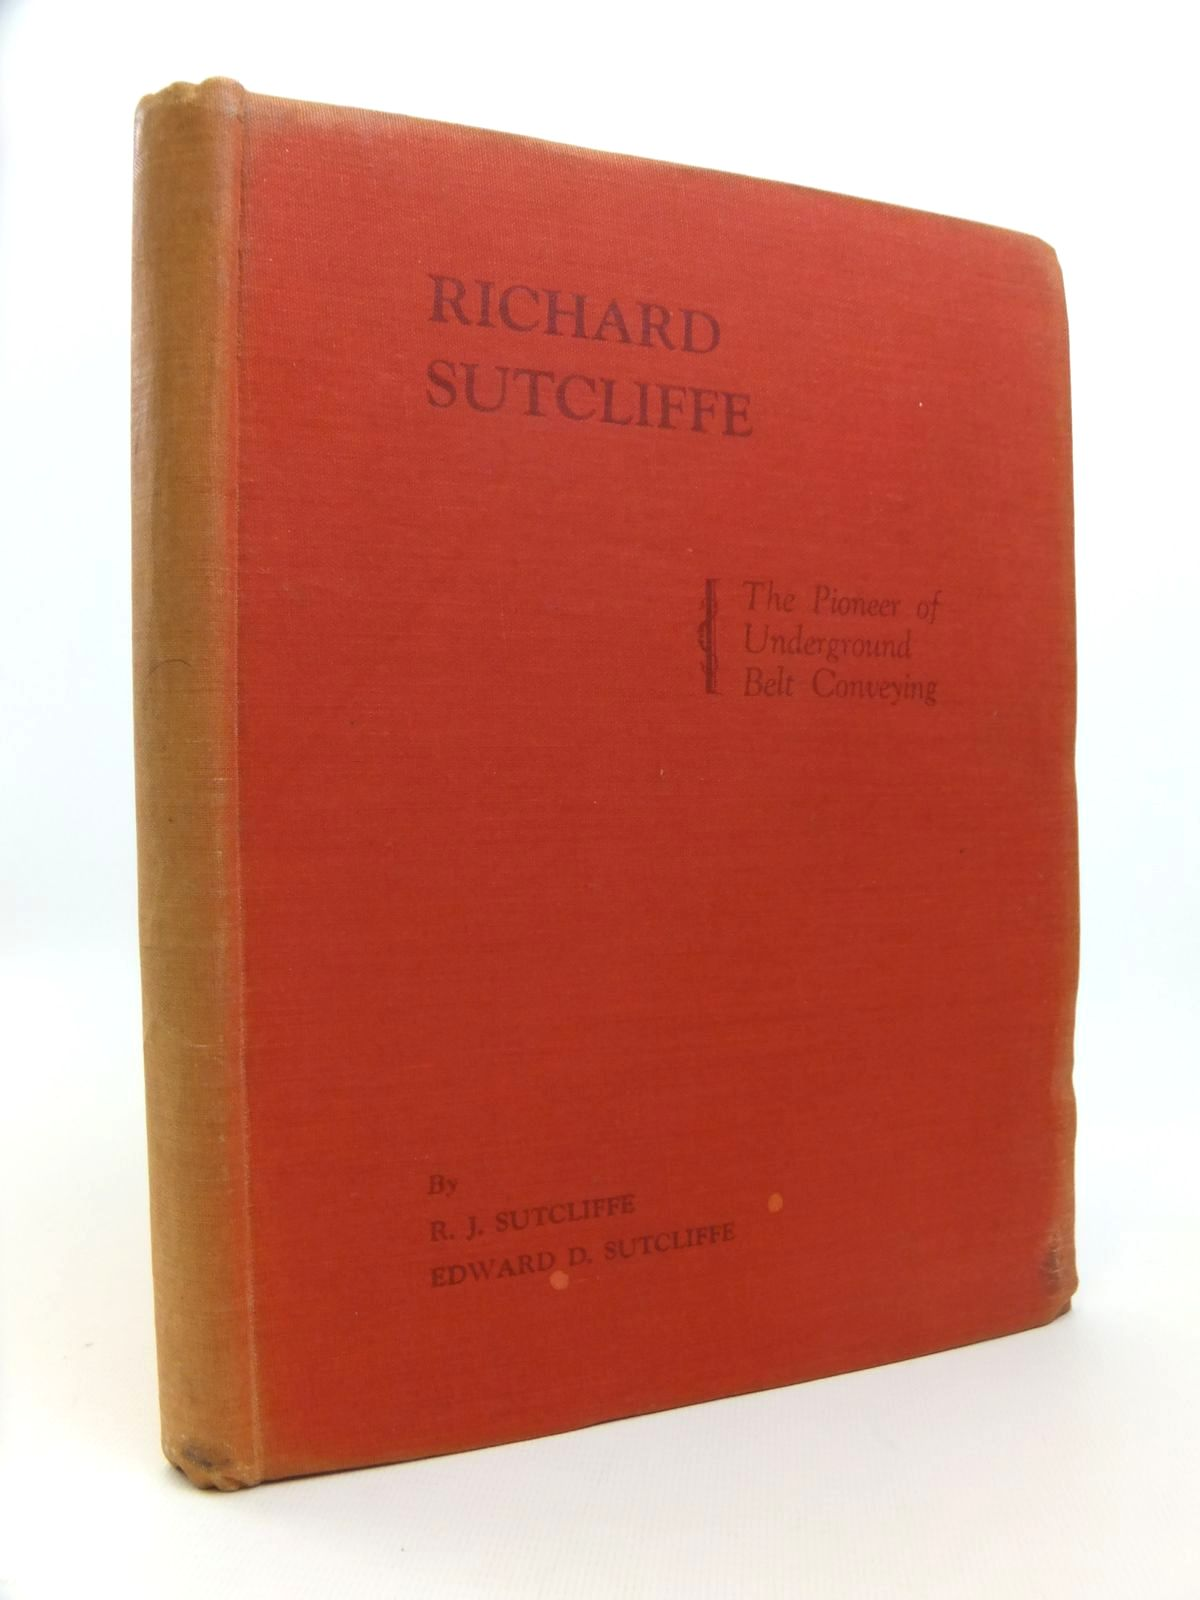 Photo of RICHARD SUTCLIFFE: THE PIONEER OF UNDERGROUND BELT CONVEYING written by Sutcliffe, R.J. Sutcliffe, Edward D. published by R.W. Simpson & Co. Ltd. (STOCK CODE: 1812299)  for sale by Stella & Rose's Books